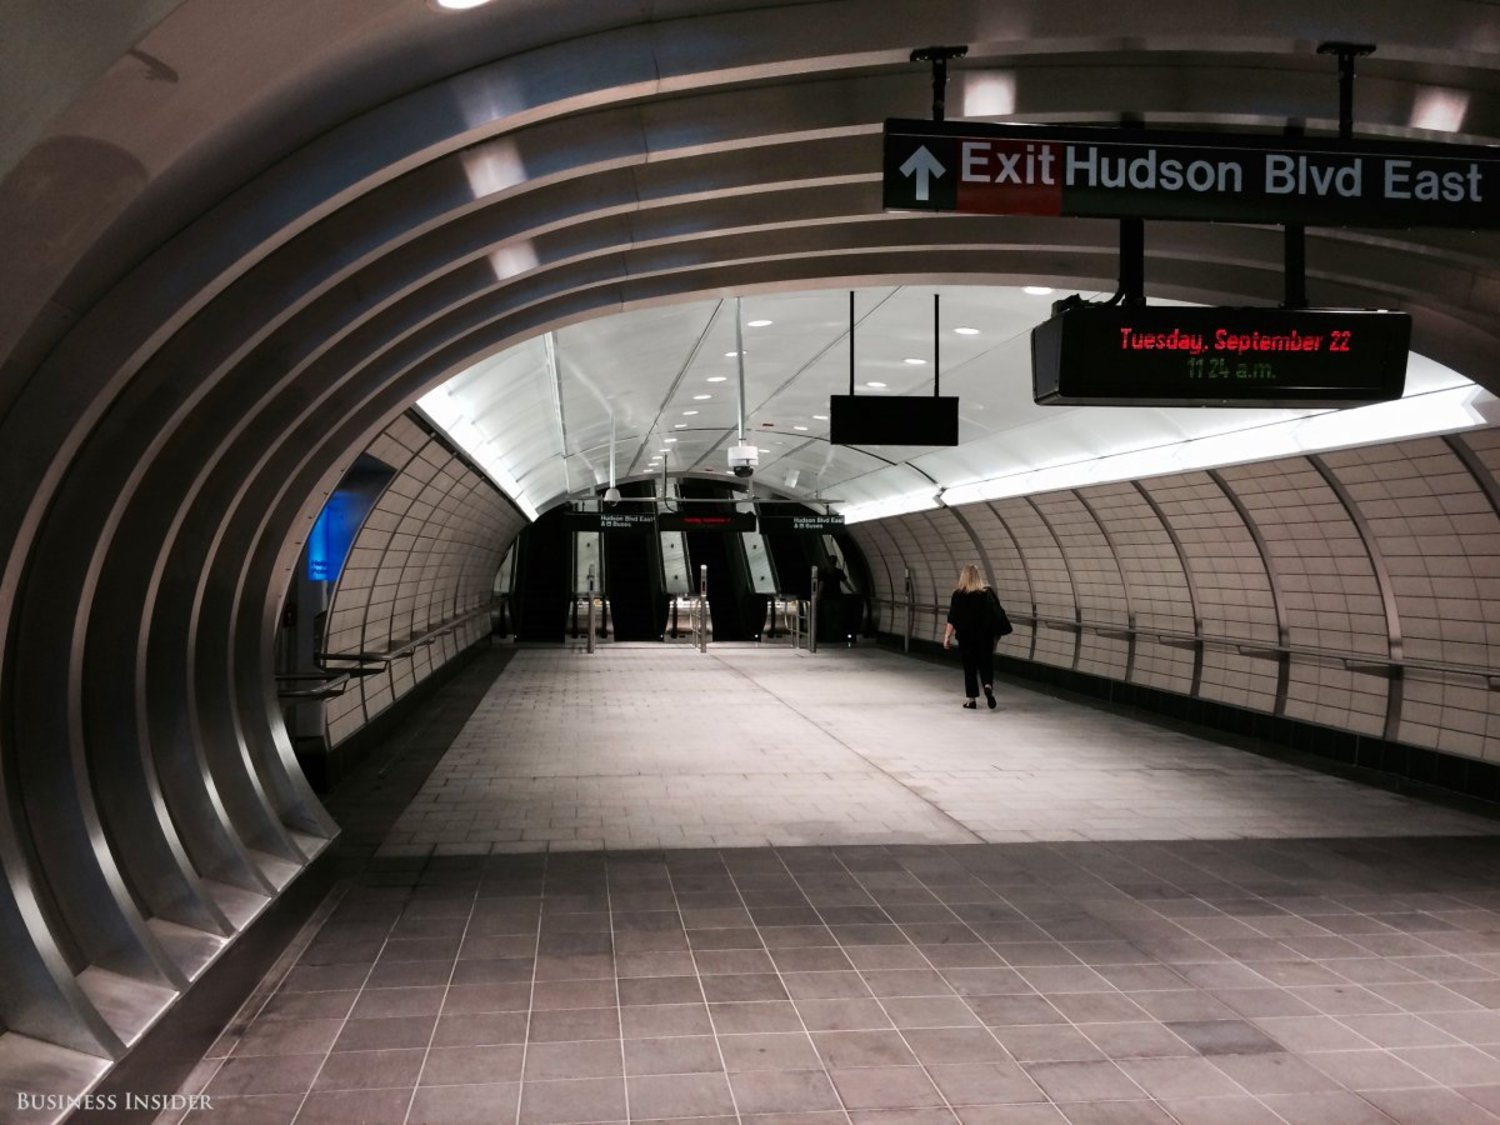 The architecture is decidedly modern, and there are no straight walls, just cavernous tubes. Unlike most subway stations, the temperature is comfortable. Reasonable temperatures in a subway station are far from an everyday occurrence.